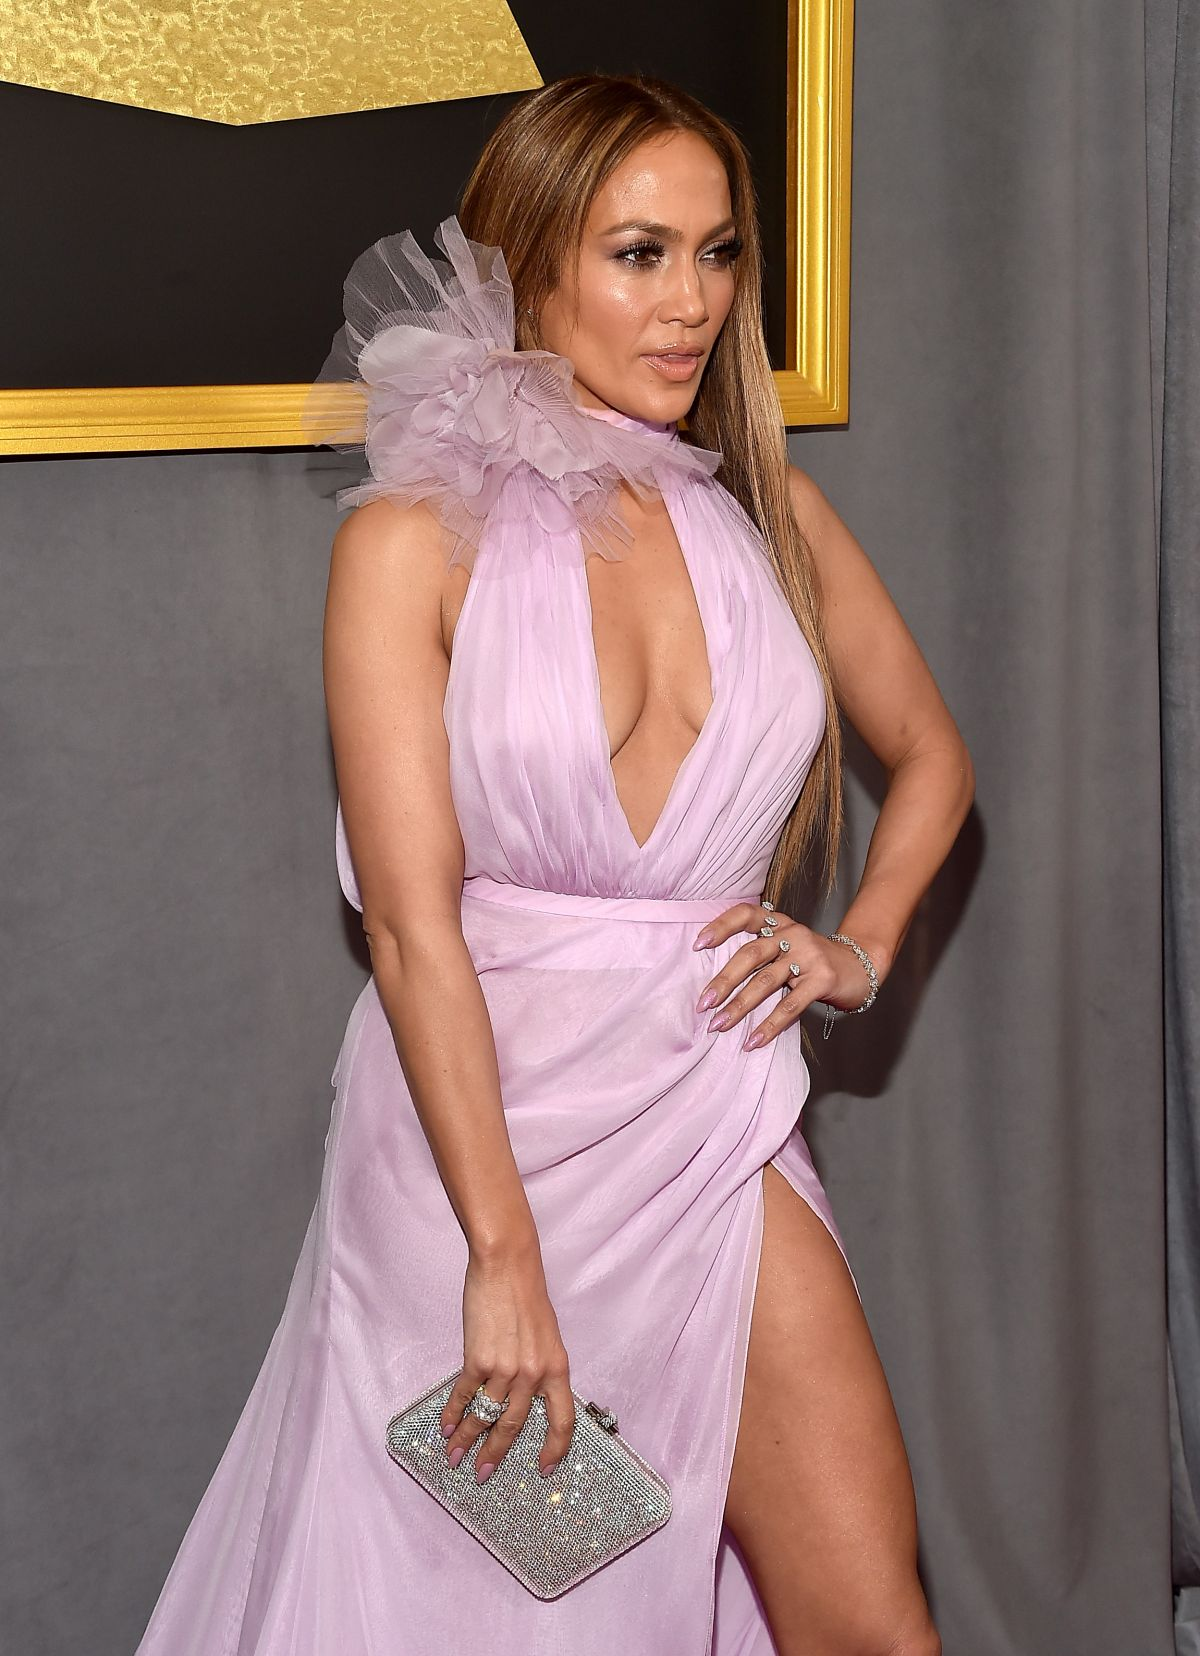 JENNIFER LOPEZ at 59th Annual Grammy Awards in Los Angeles 02/12/2017